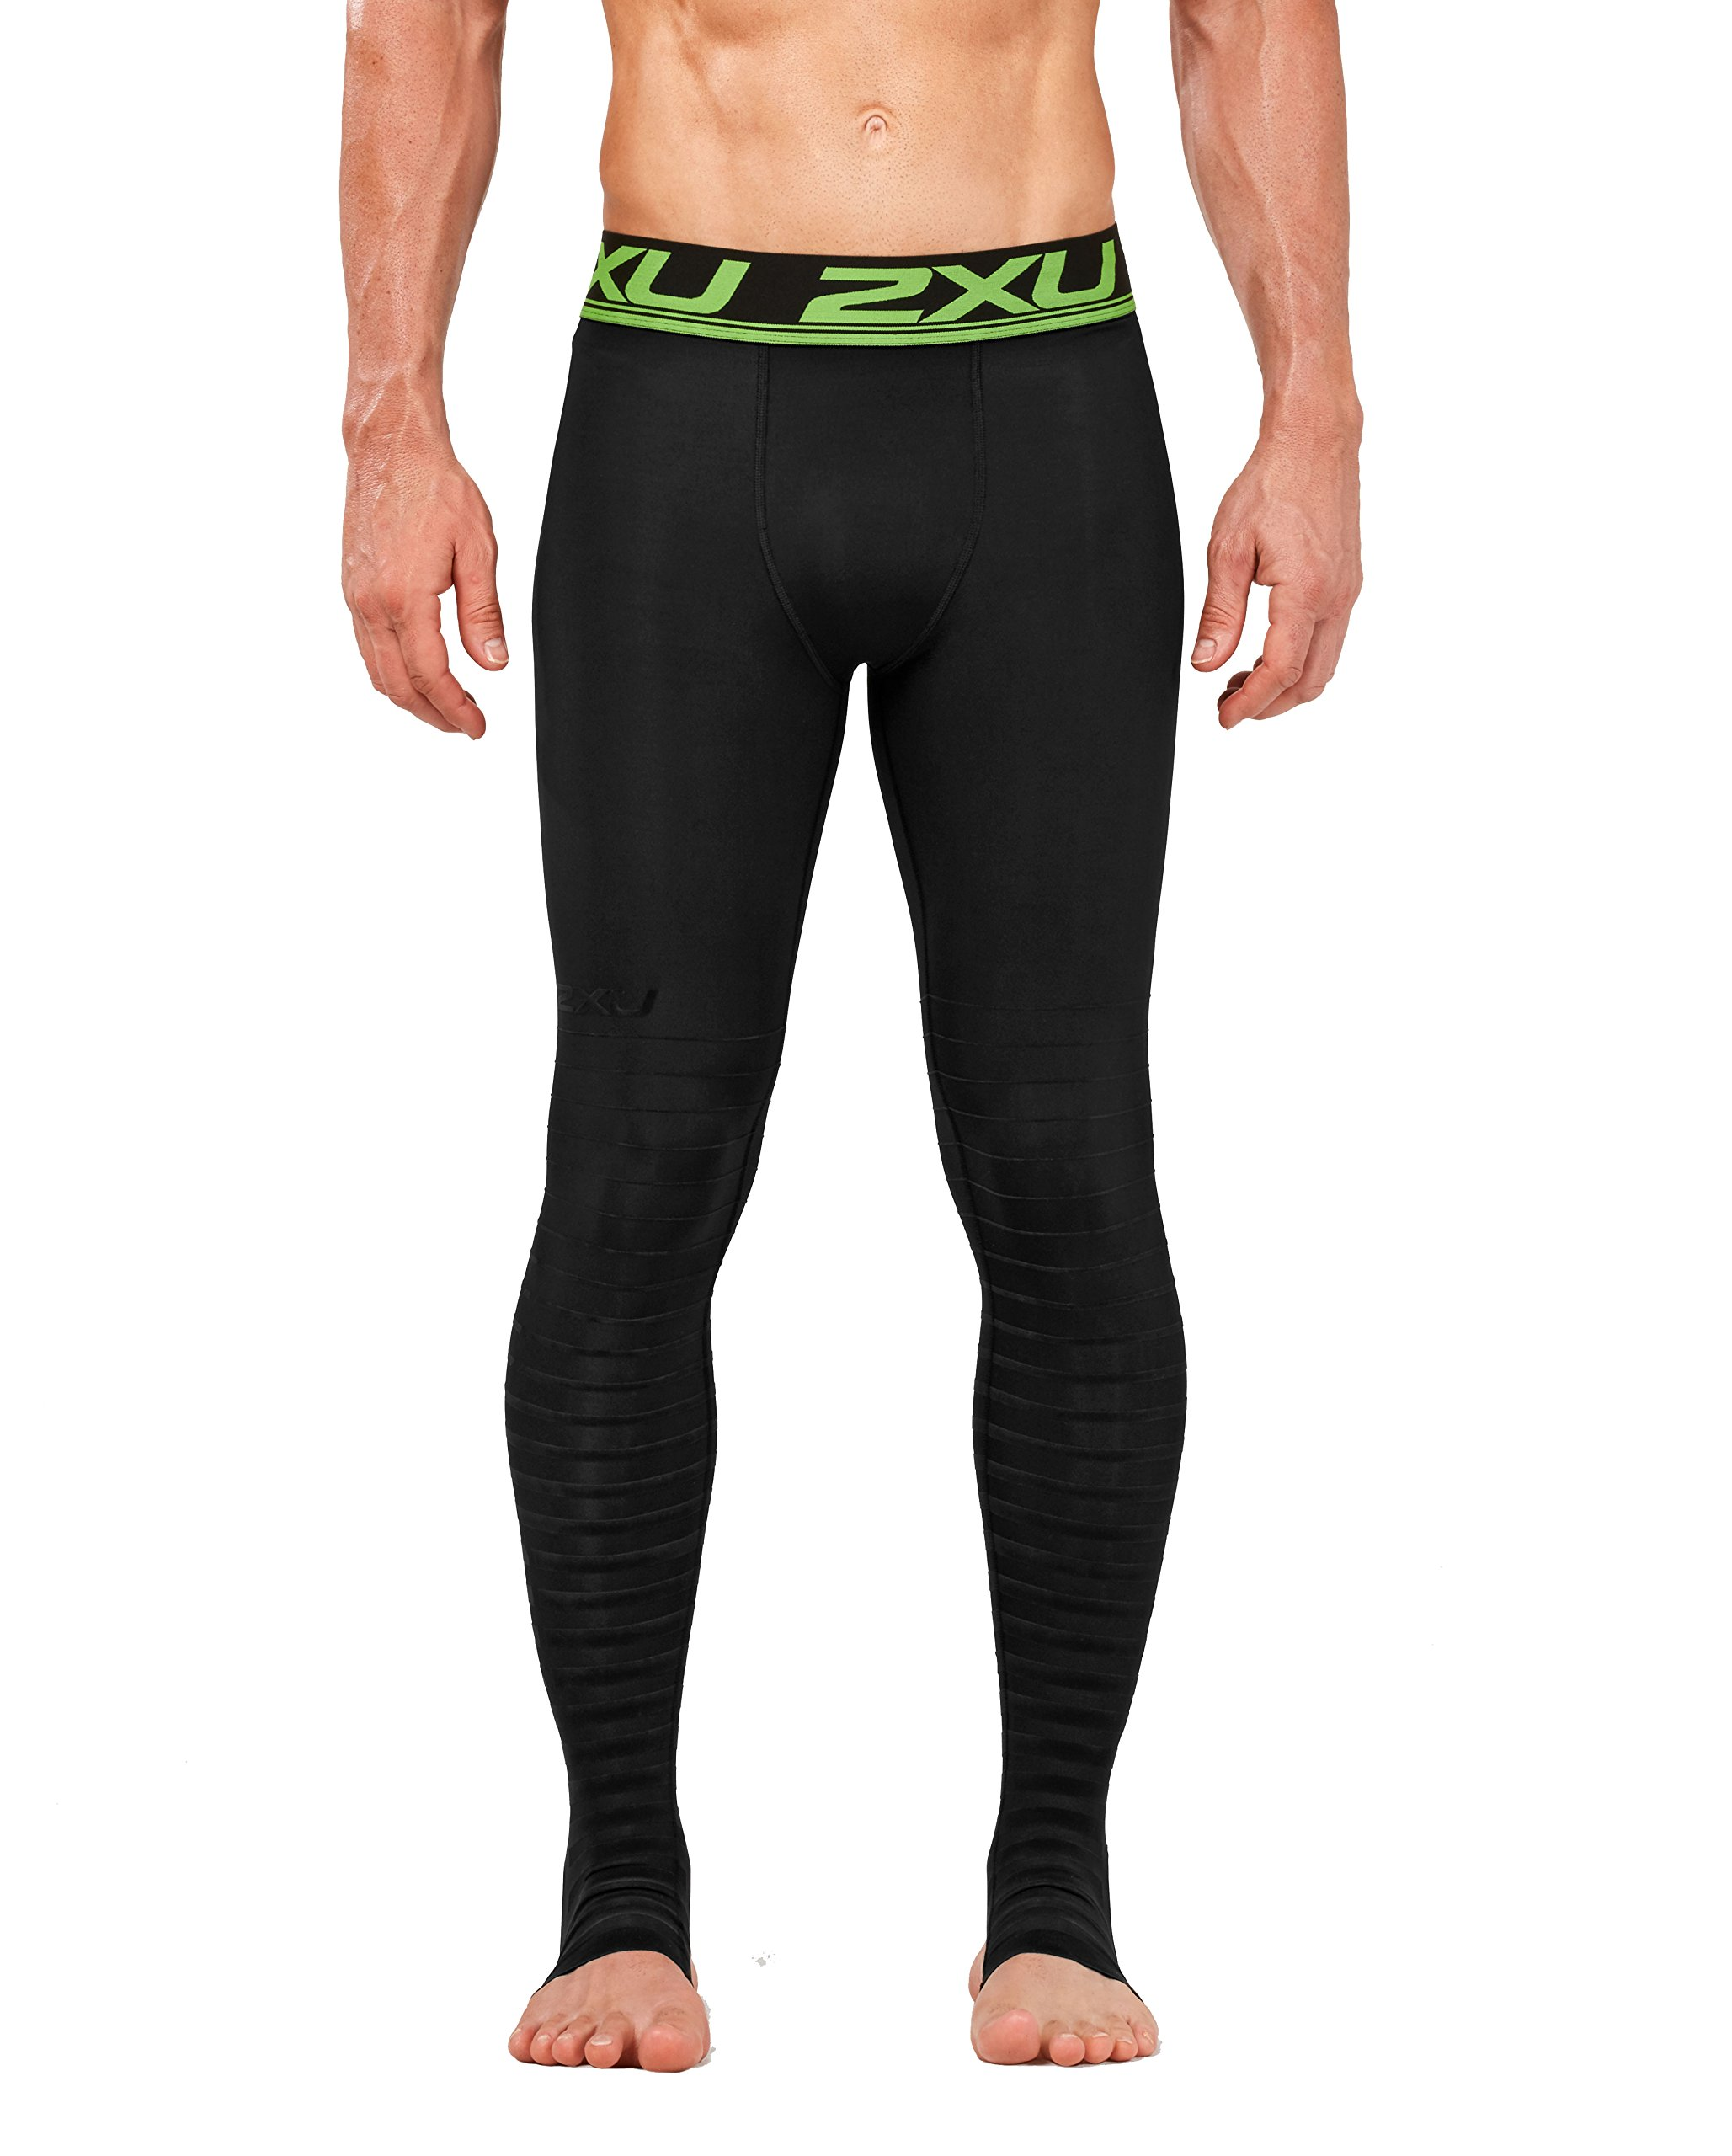 2XU Men's Elite Power Recovery Compression Tights, Black/Nero, Small/Tall by 2XU (Image #2)